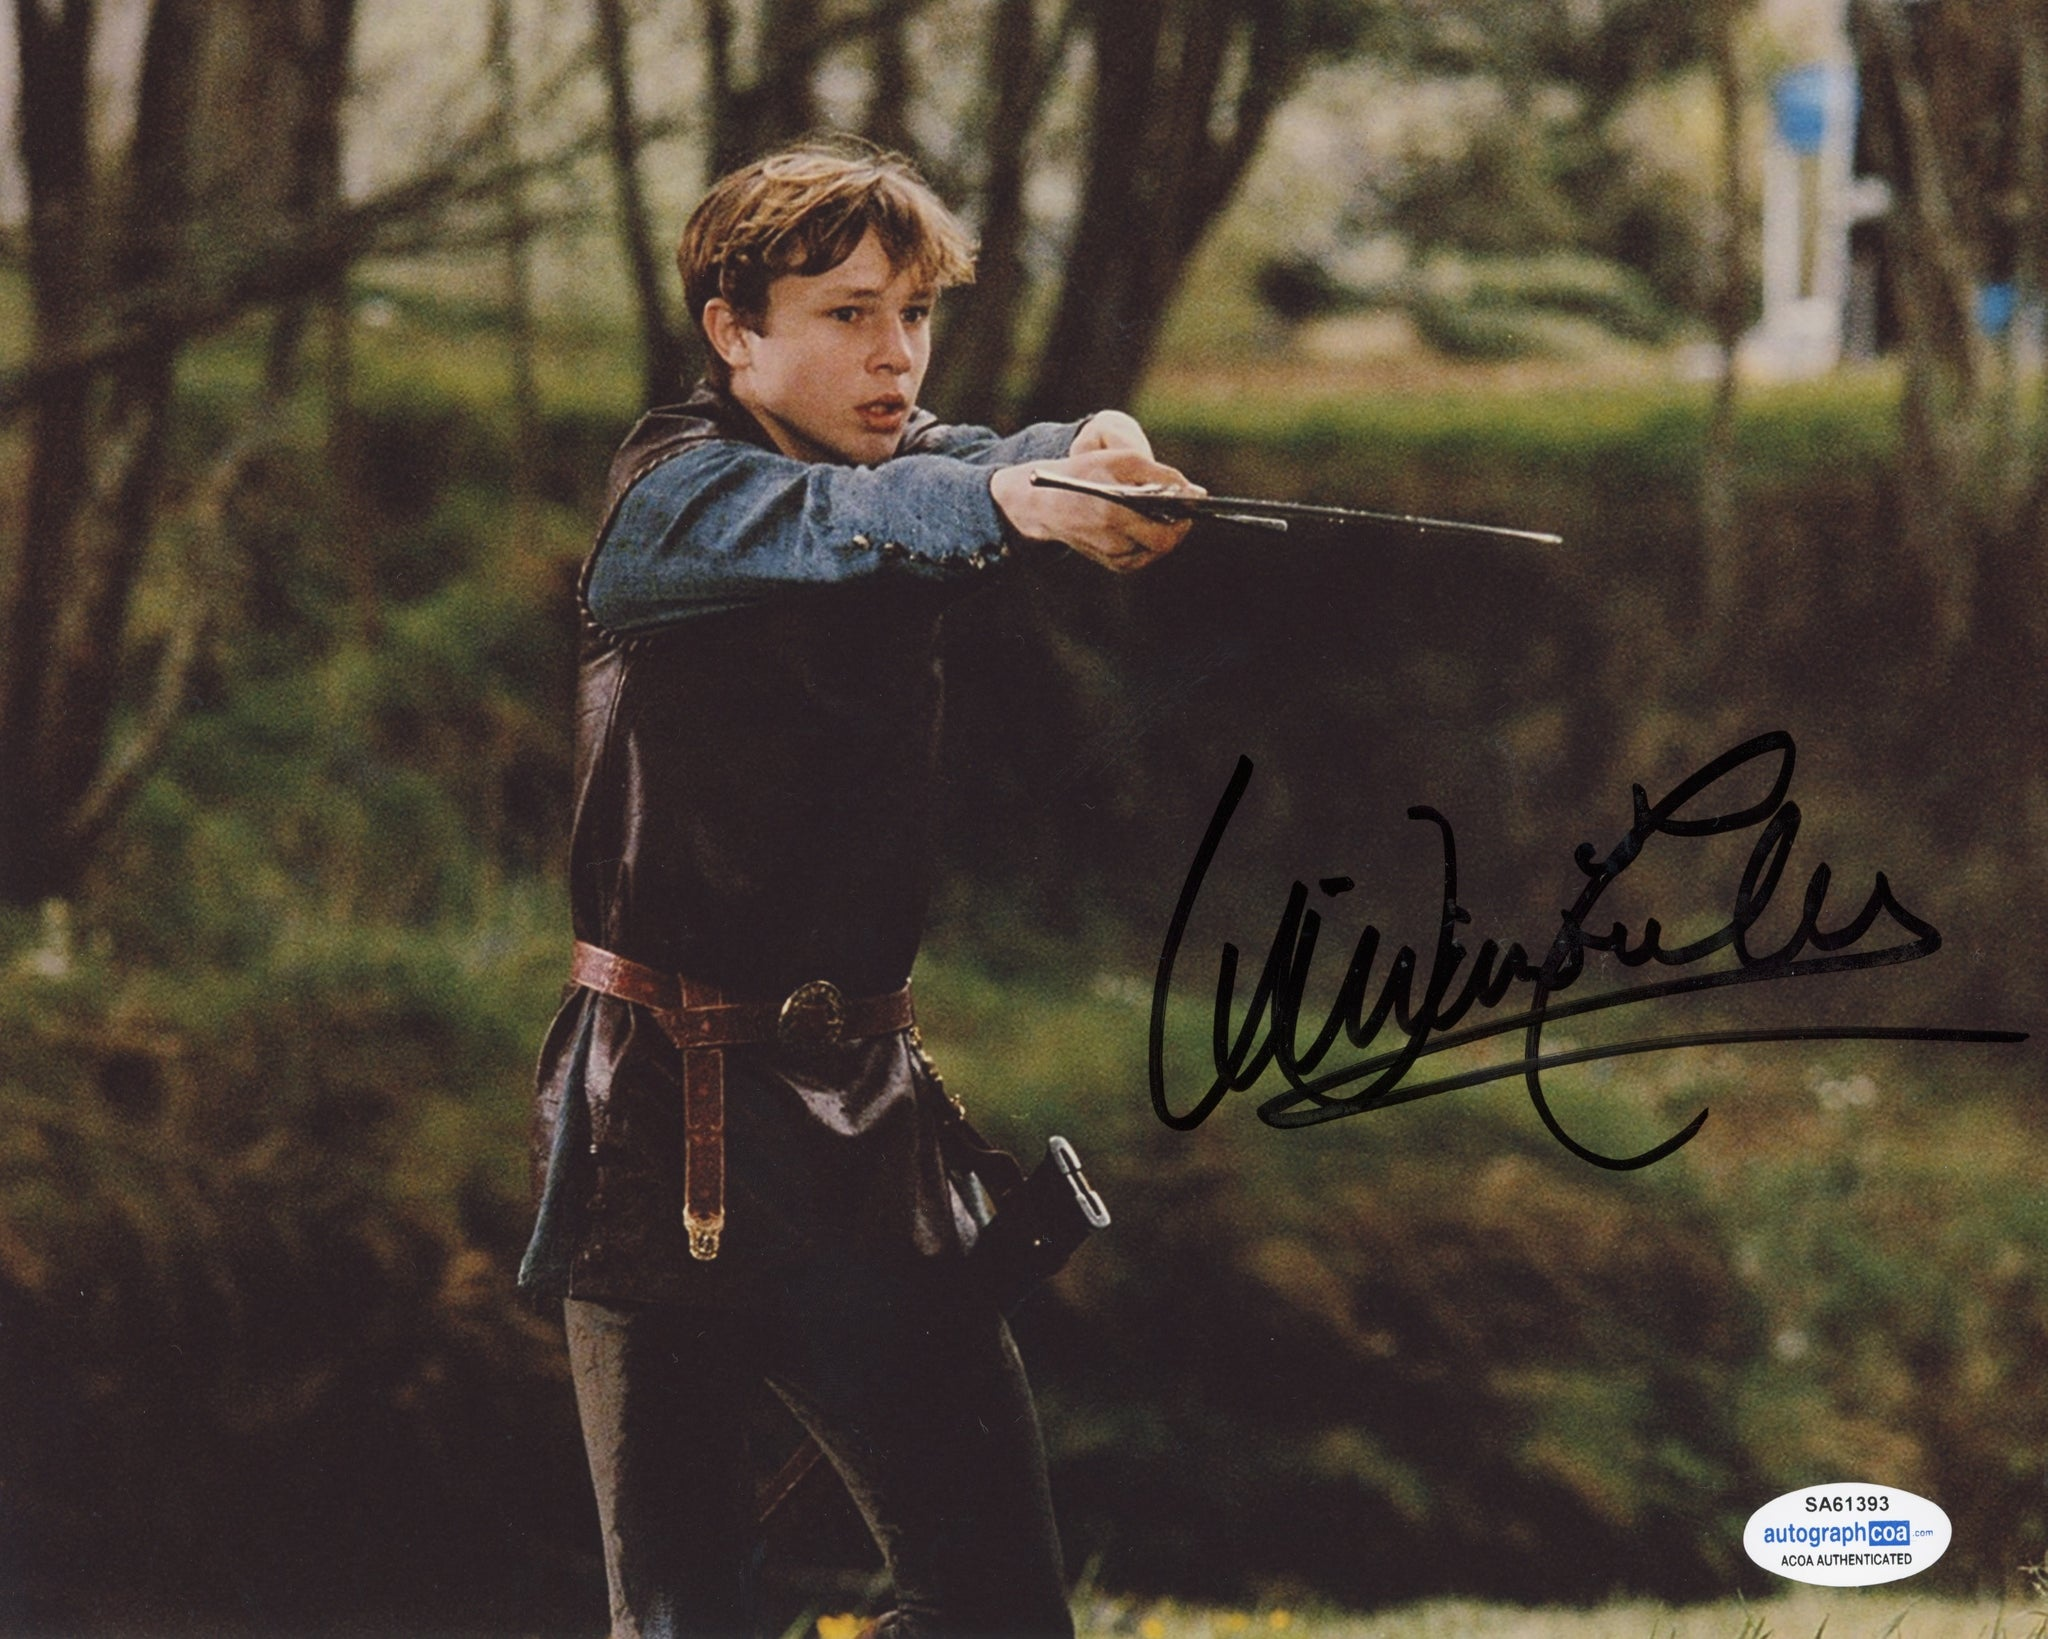 William Moseley Chronicles of Narnia Signed Autograph 8x10 Photo #4